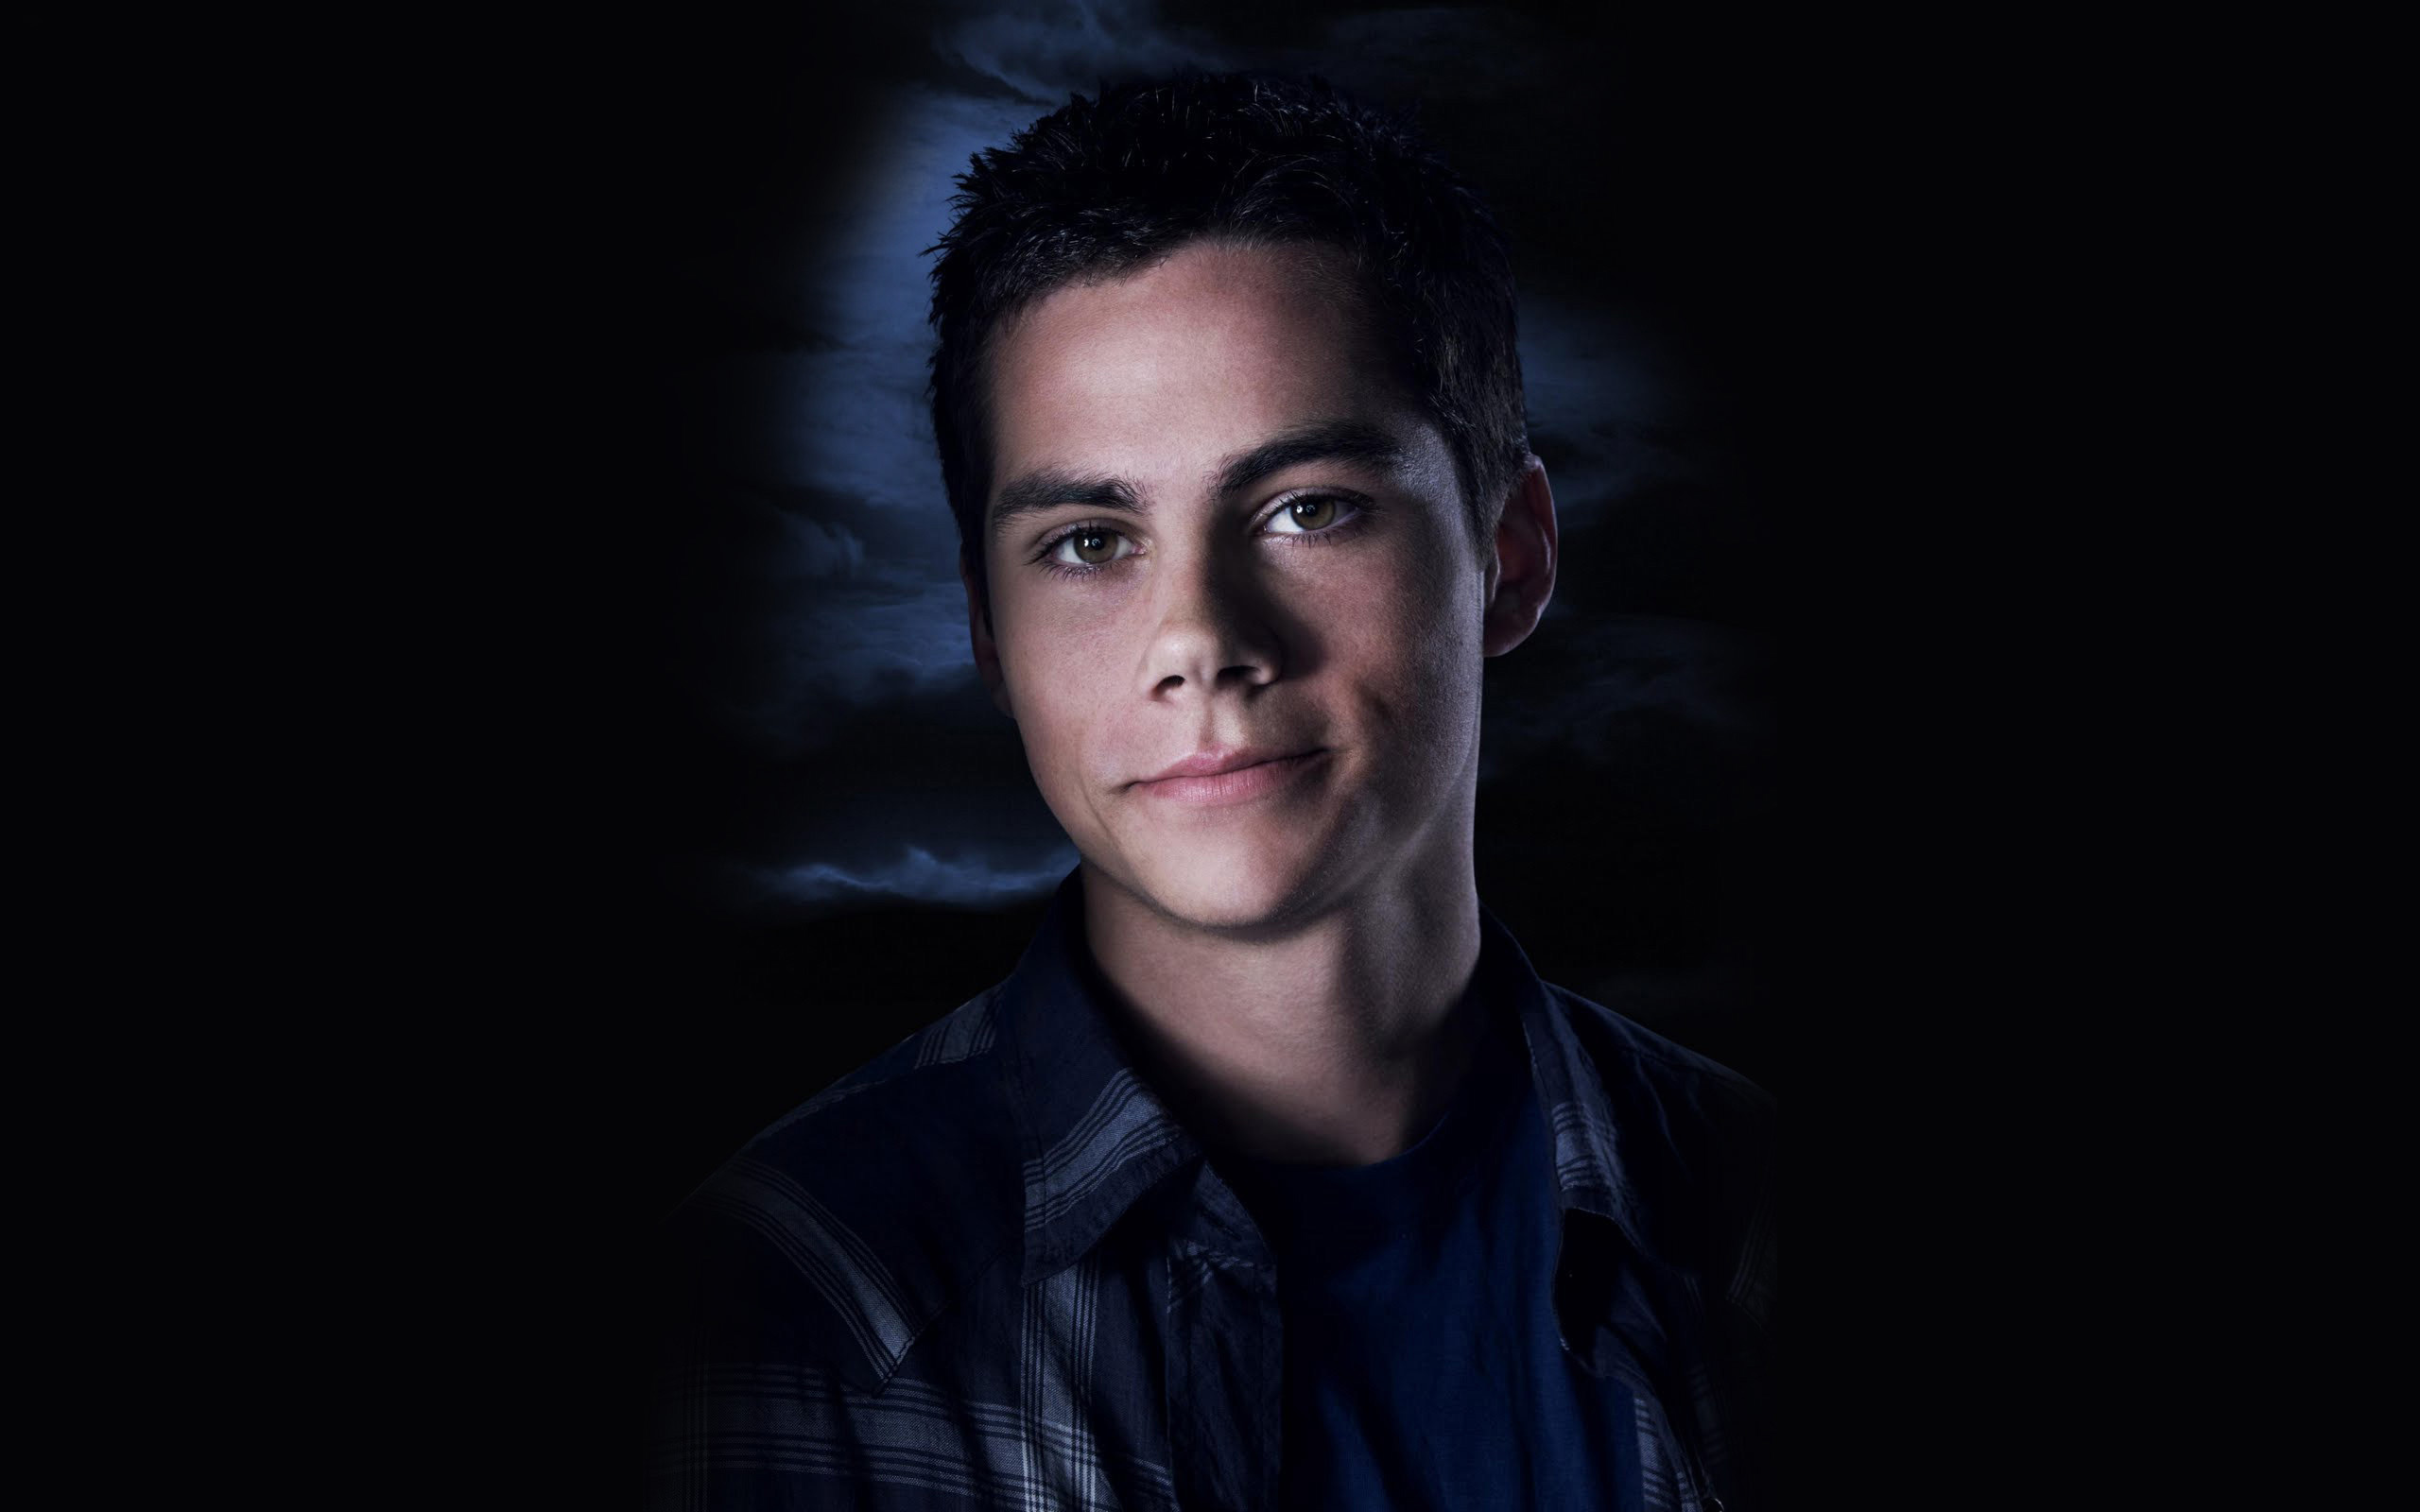 Dylan OBrien Full HD Bakgrund And